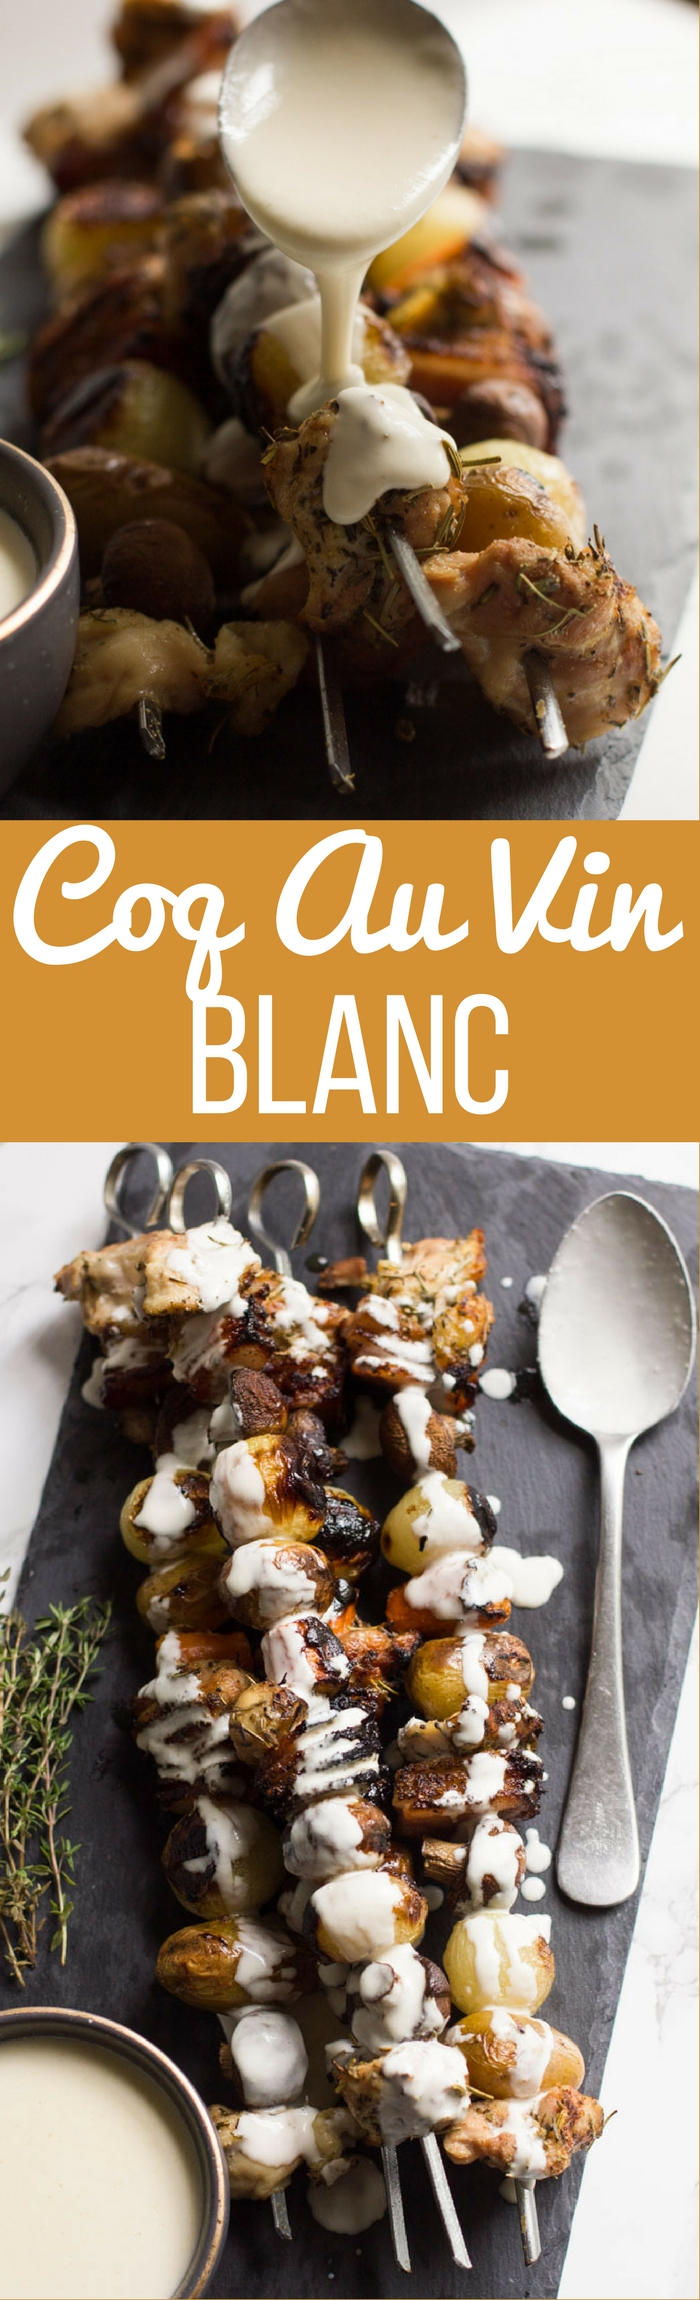 coq au vin blanc on skewers away from the box. Black Bedroom Furniture Sets. Home Design Ideas